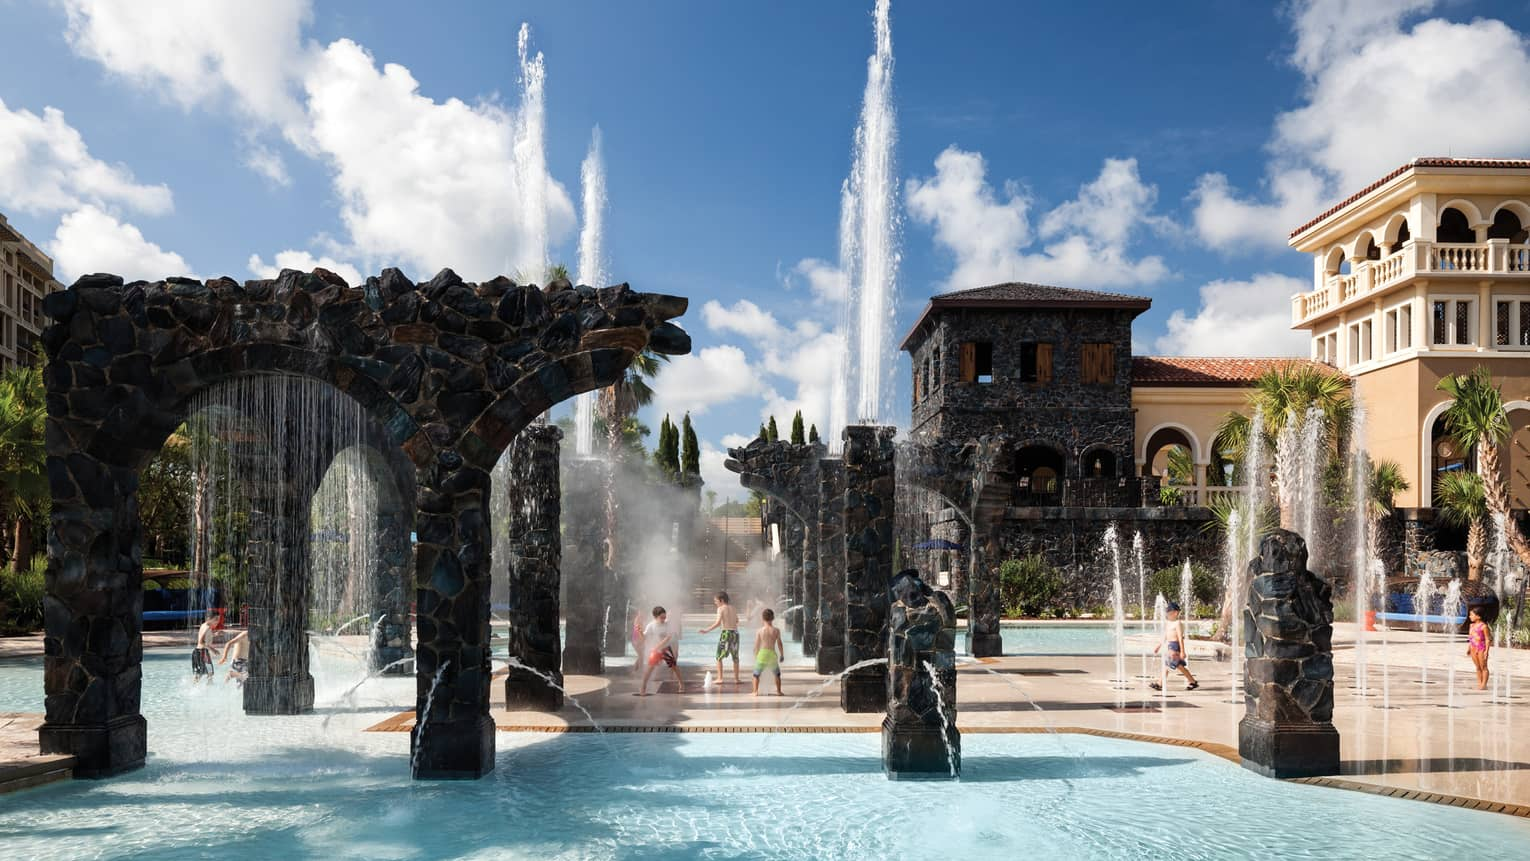 Kids play in water, under sprinklers and stone pillars in the Splash Zone water park